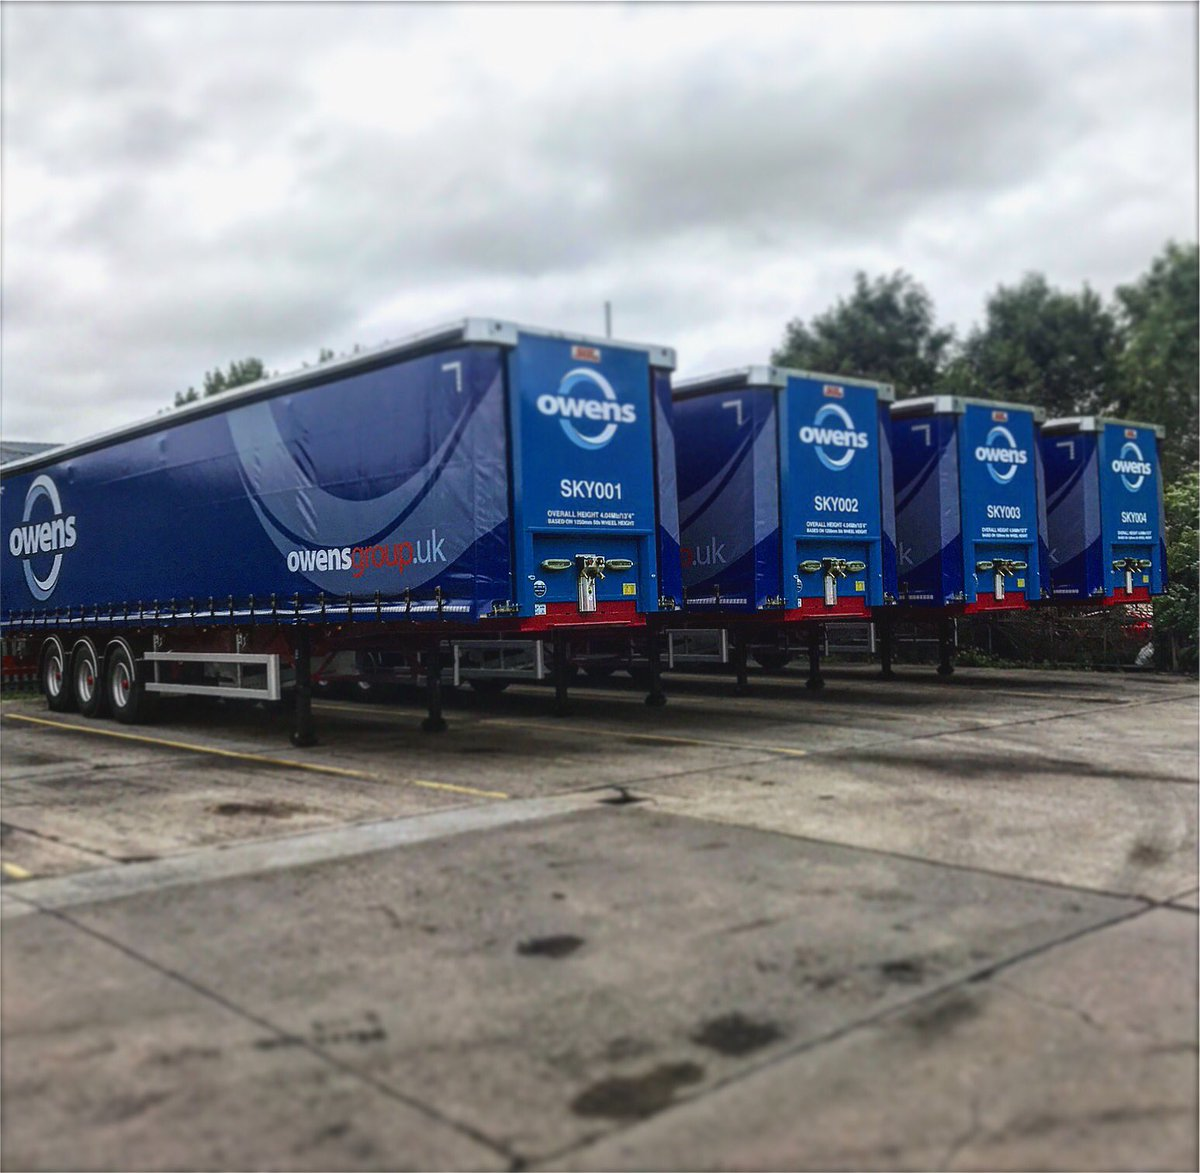 Owens Group On Twitter A Selection Of Brand New Sdctrailers